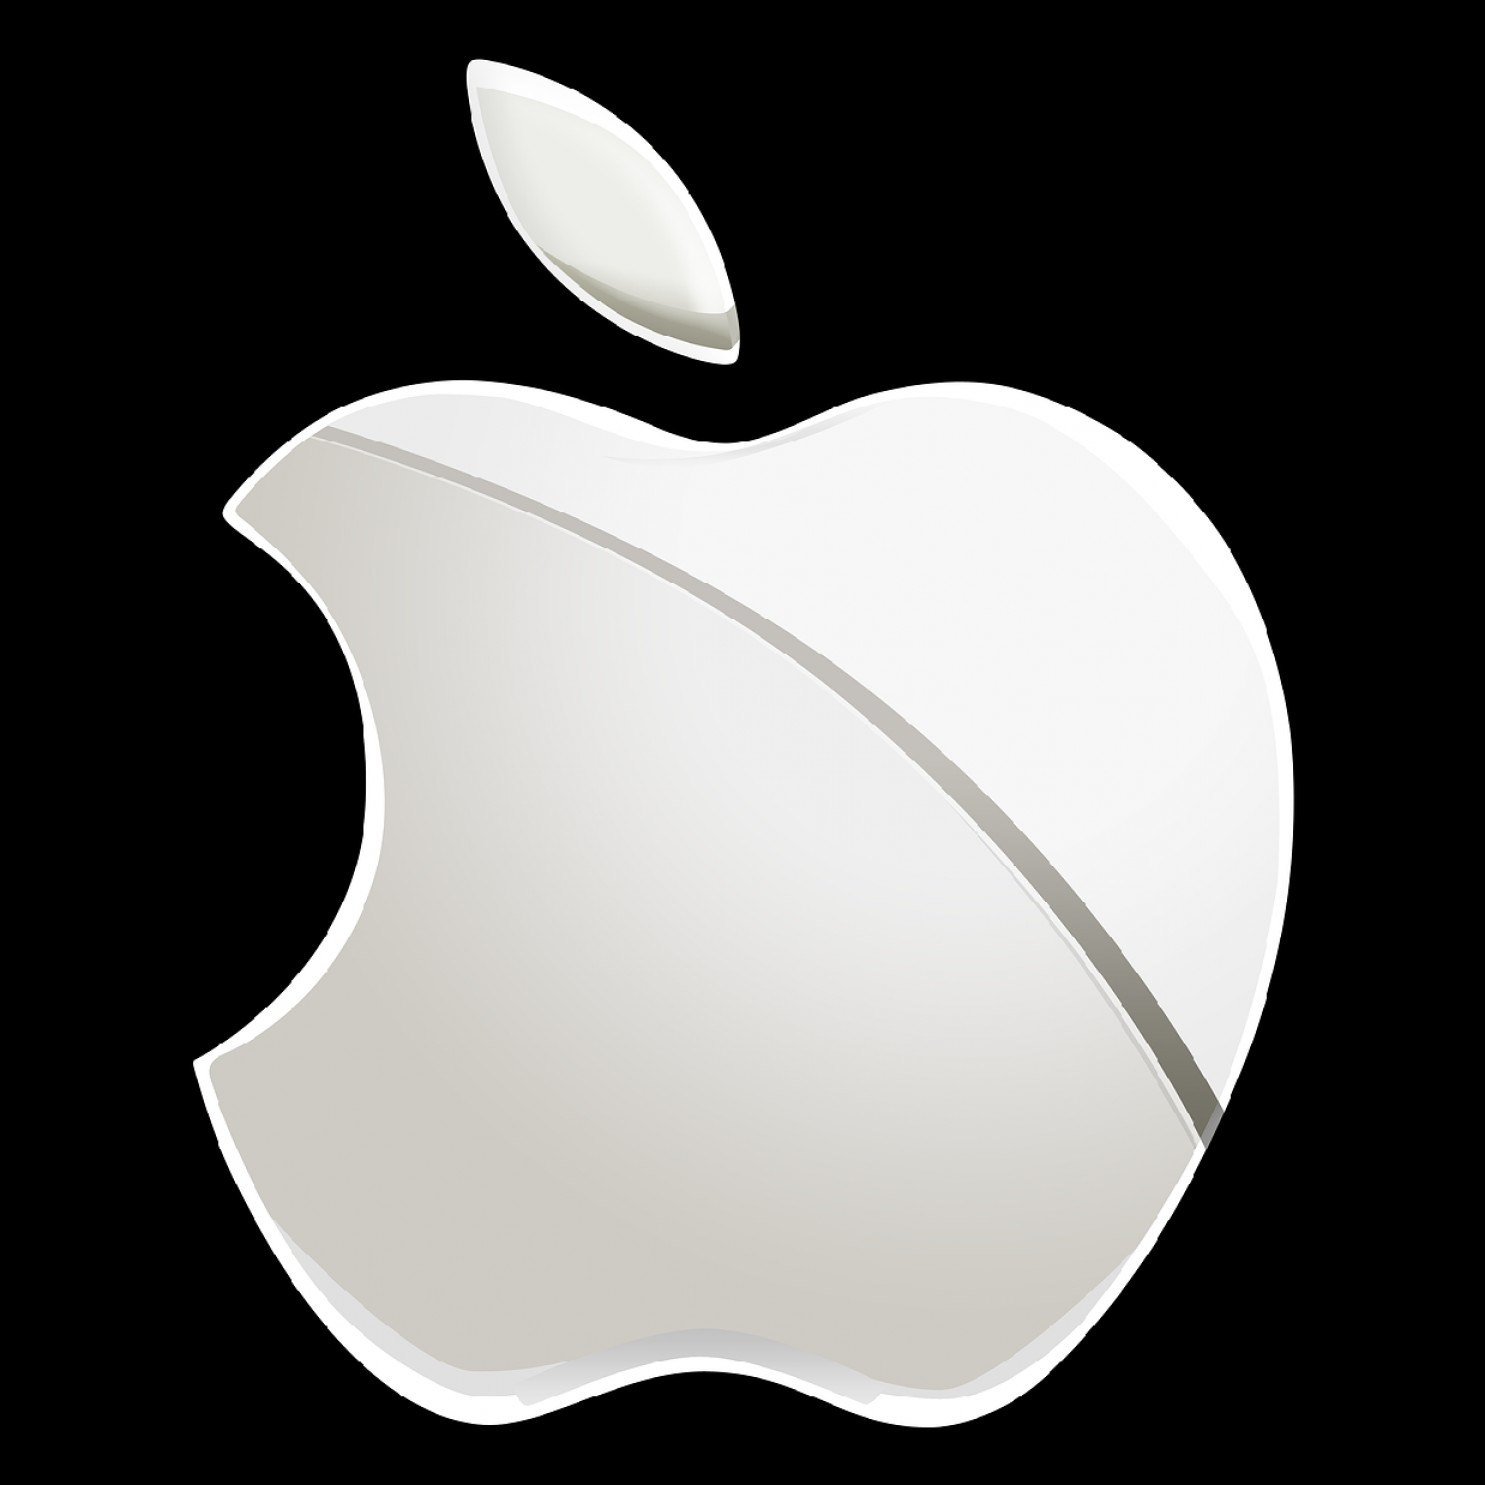 Apple IPhone Logo Vector: Ios Iphone Support Usb Camera Adapter